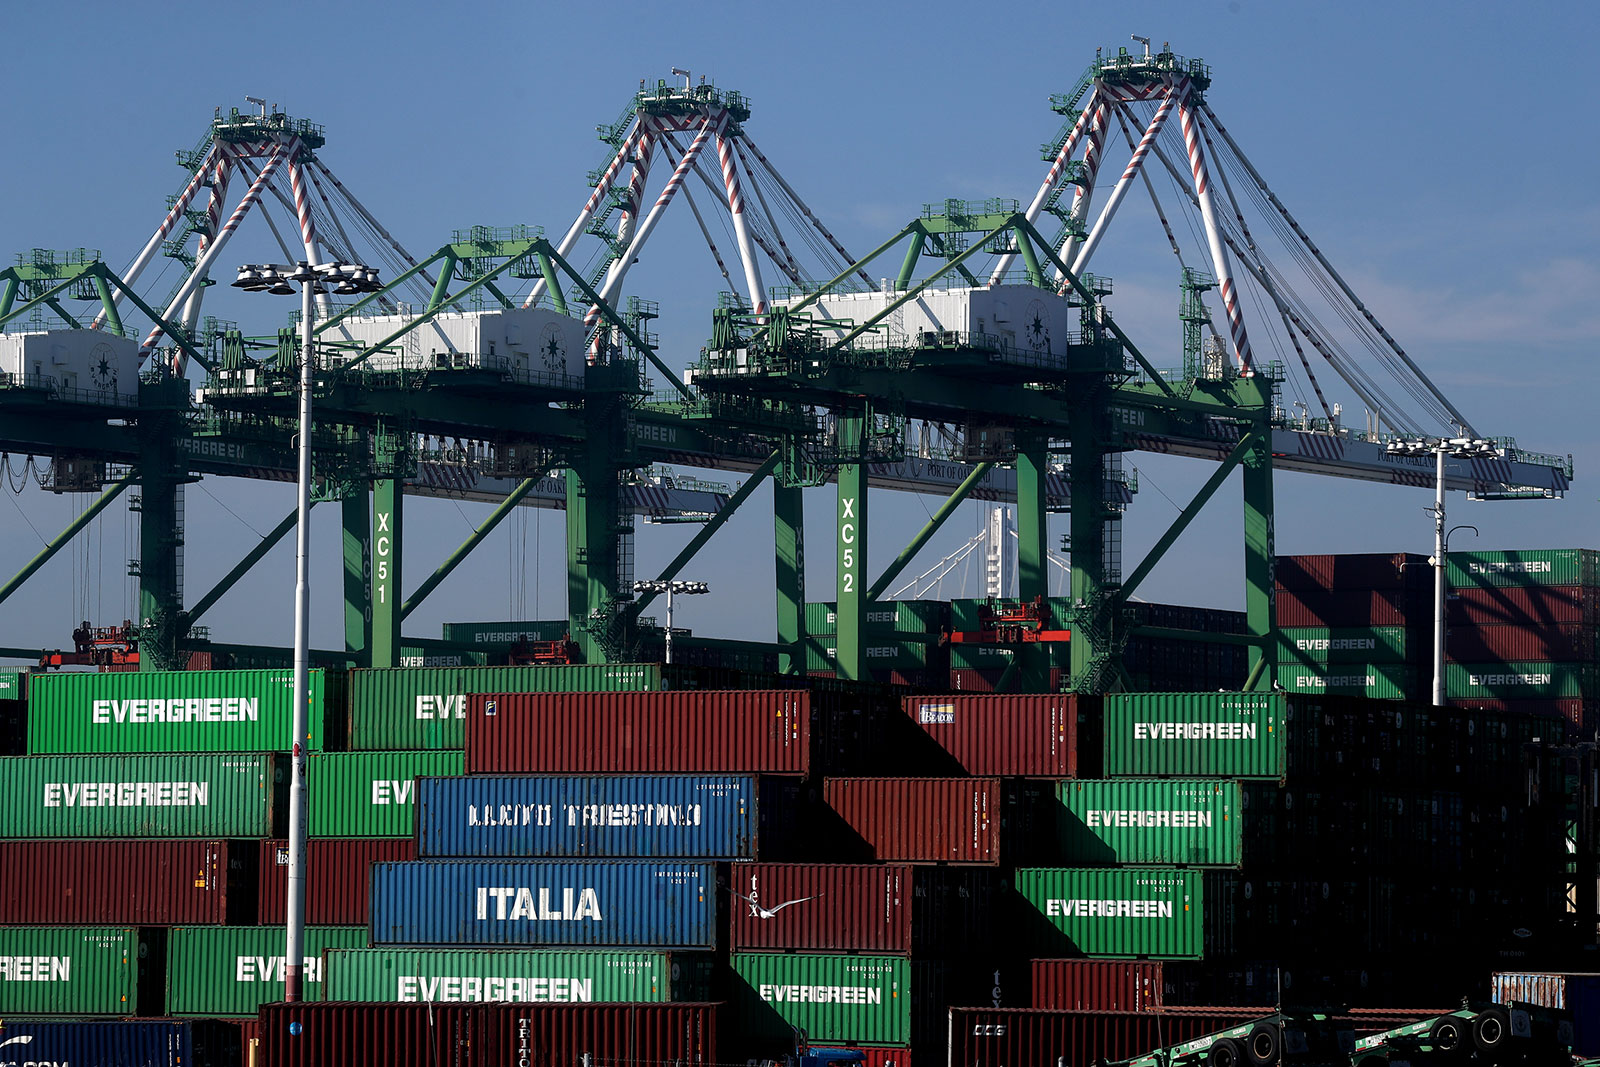 Stacks of shipping containers sit at the Port of Oakland in Oakland, California.